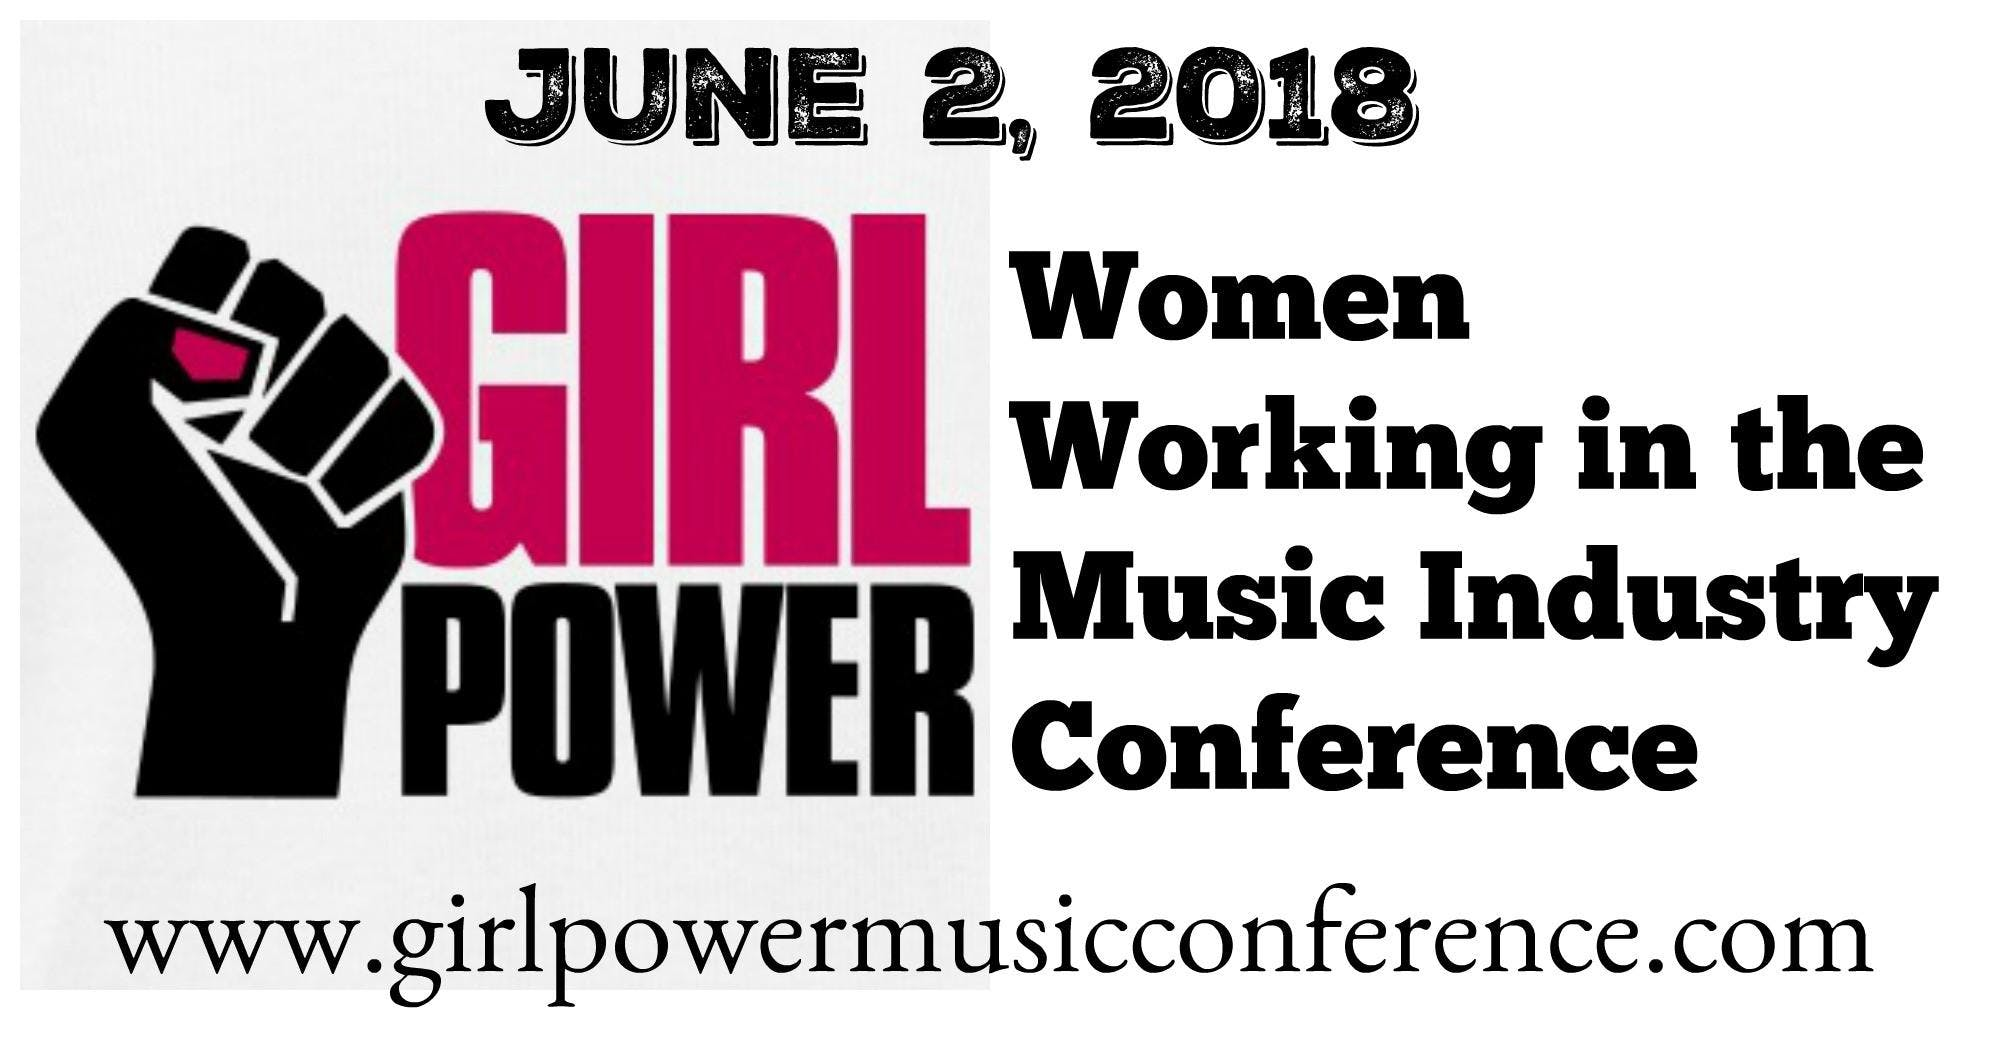 Girl Power! Women Working in the Music Indust